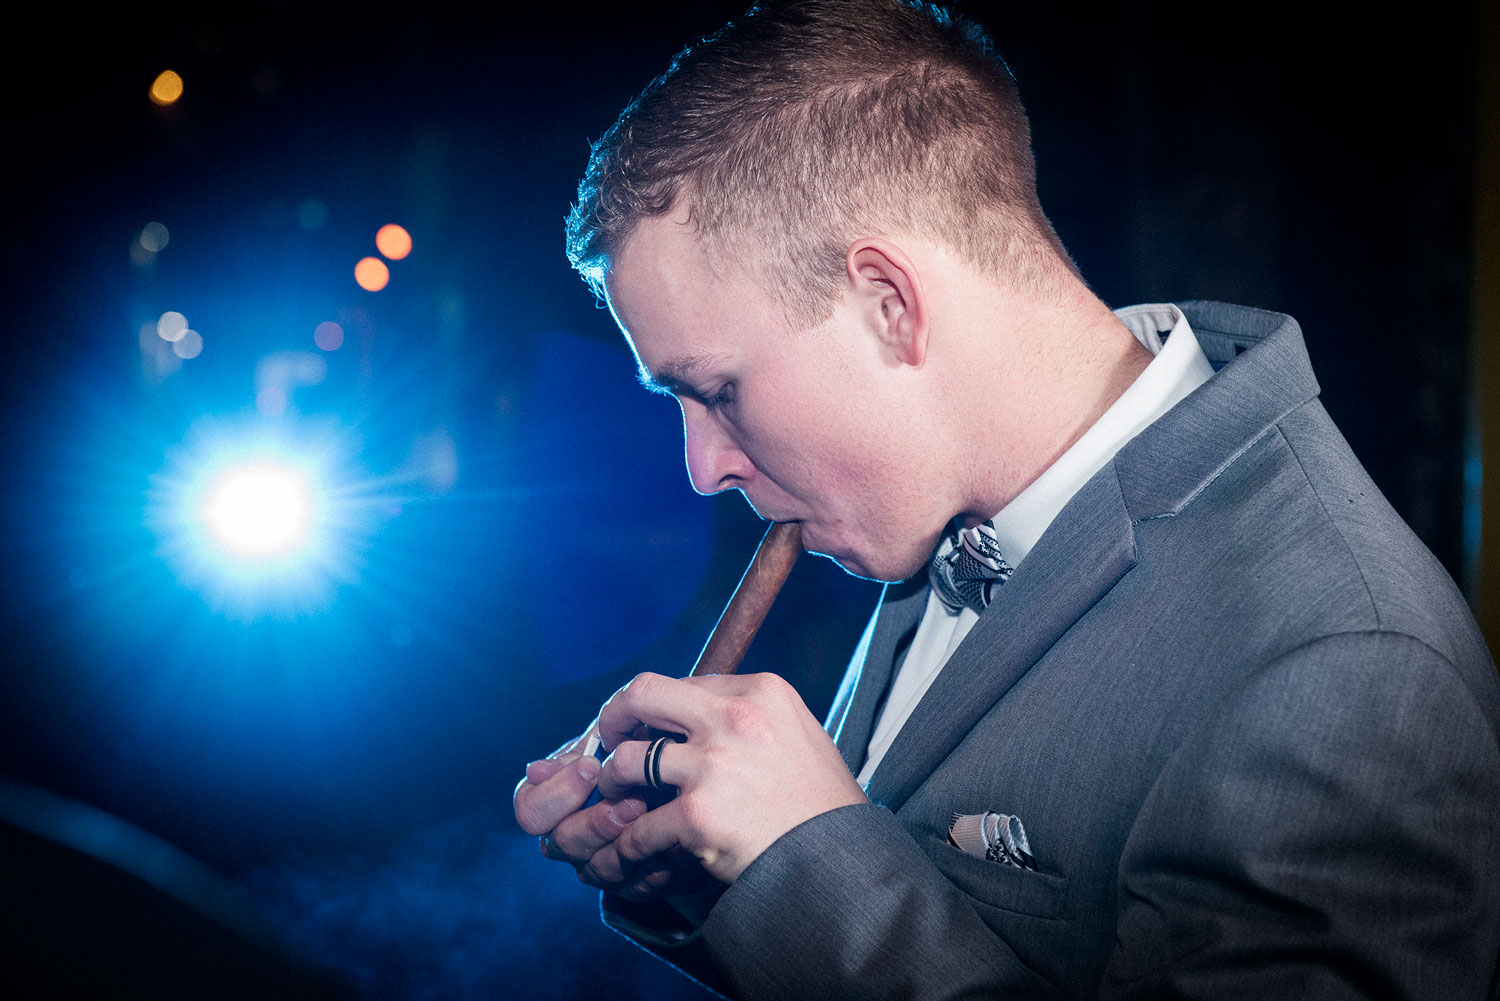 Portrait of a groom lighting up a cigar with a blue light in a background.